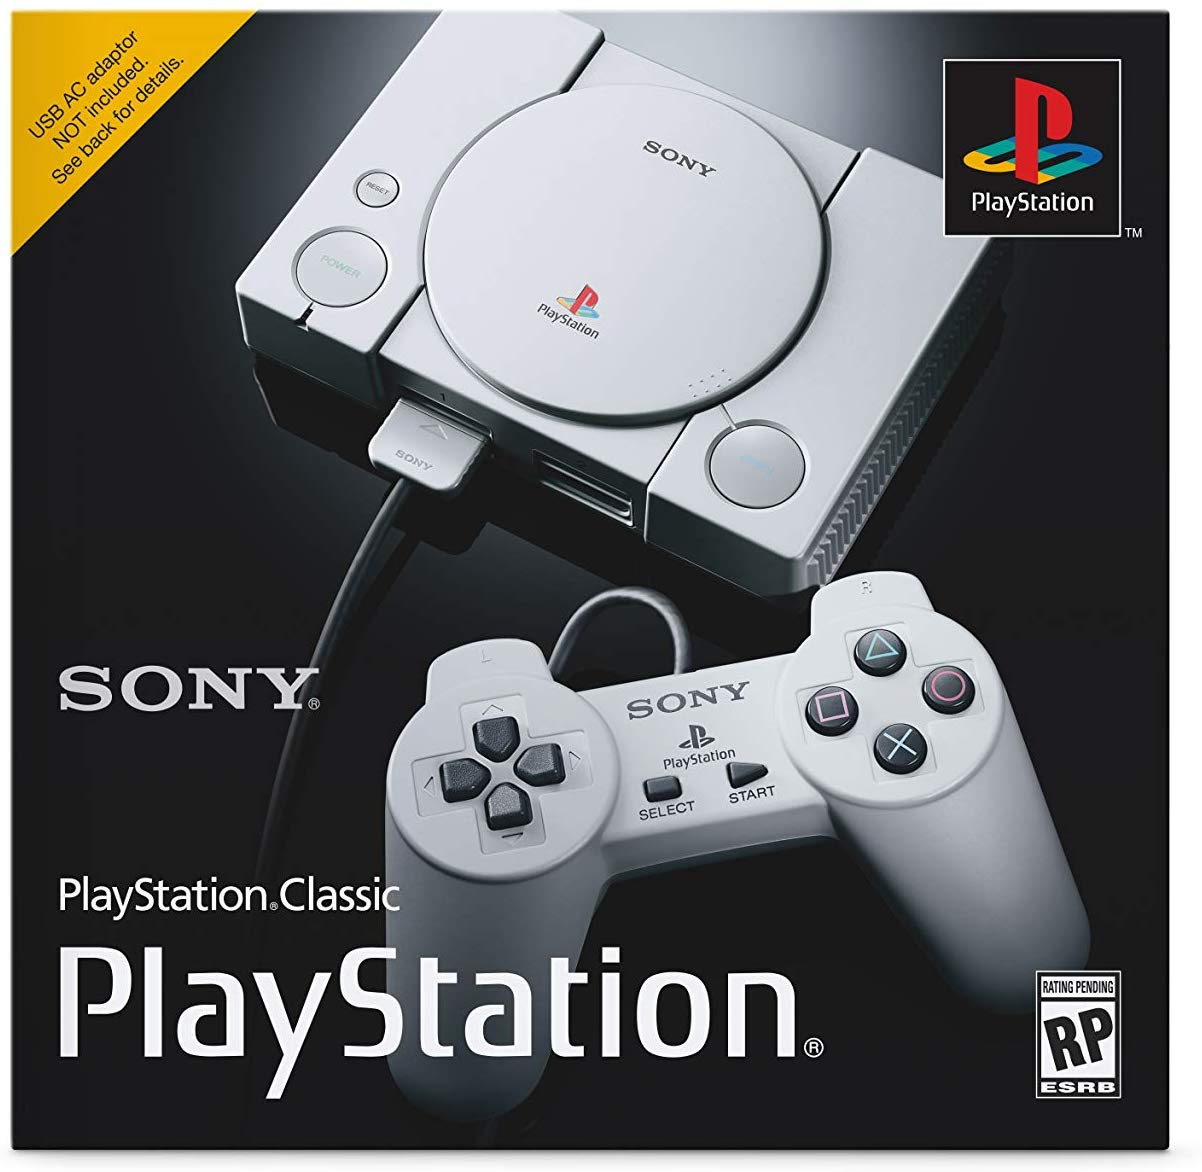 The front of the box for the PlayStation Classic